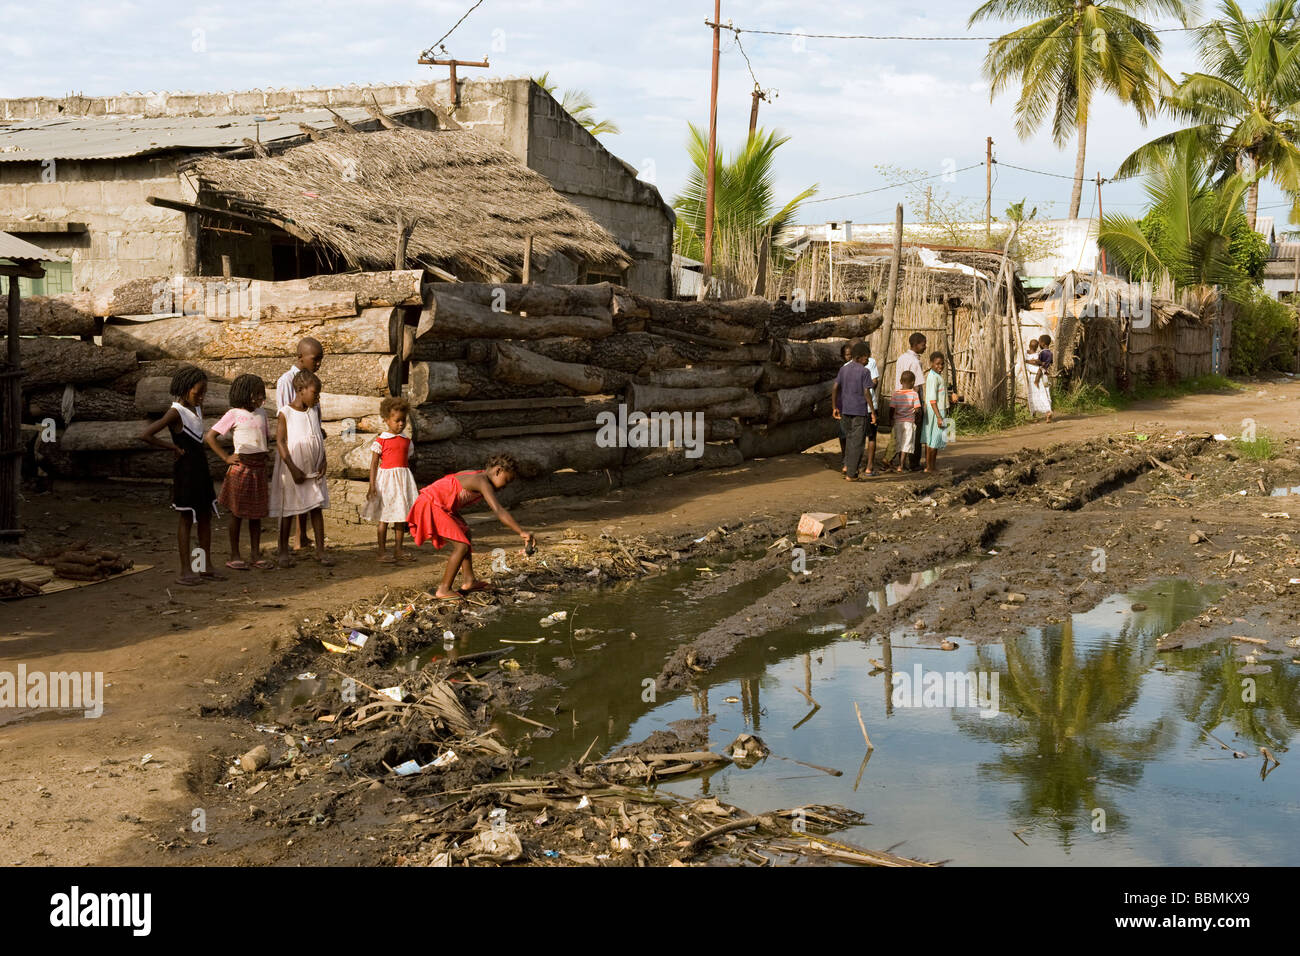 Malaria mosquitoes find suitable breeding grounds in water filled potholes Quelimane Mozambique - Stock Image